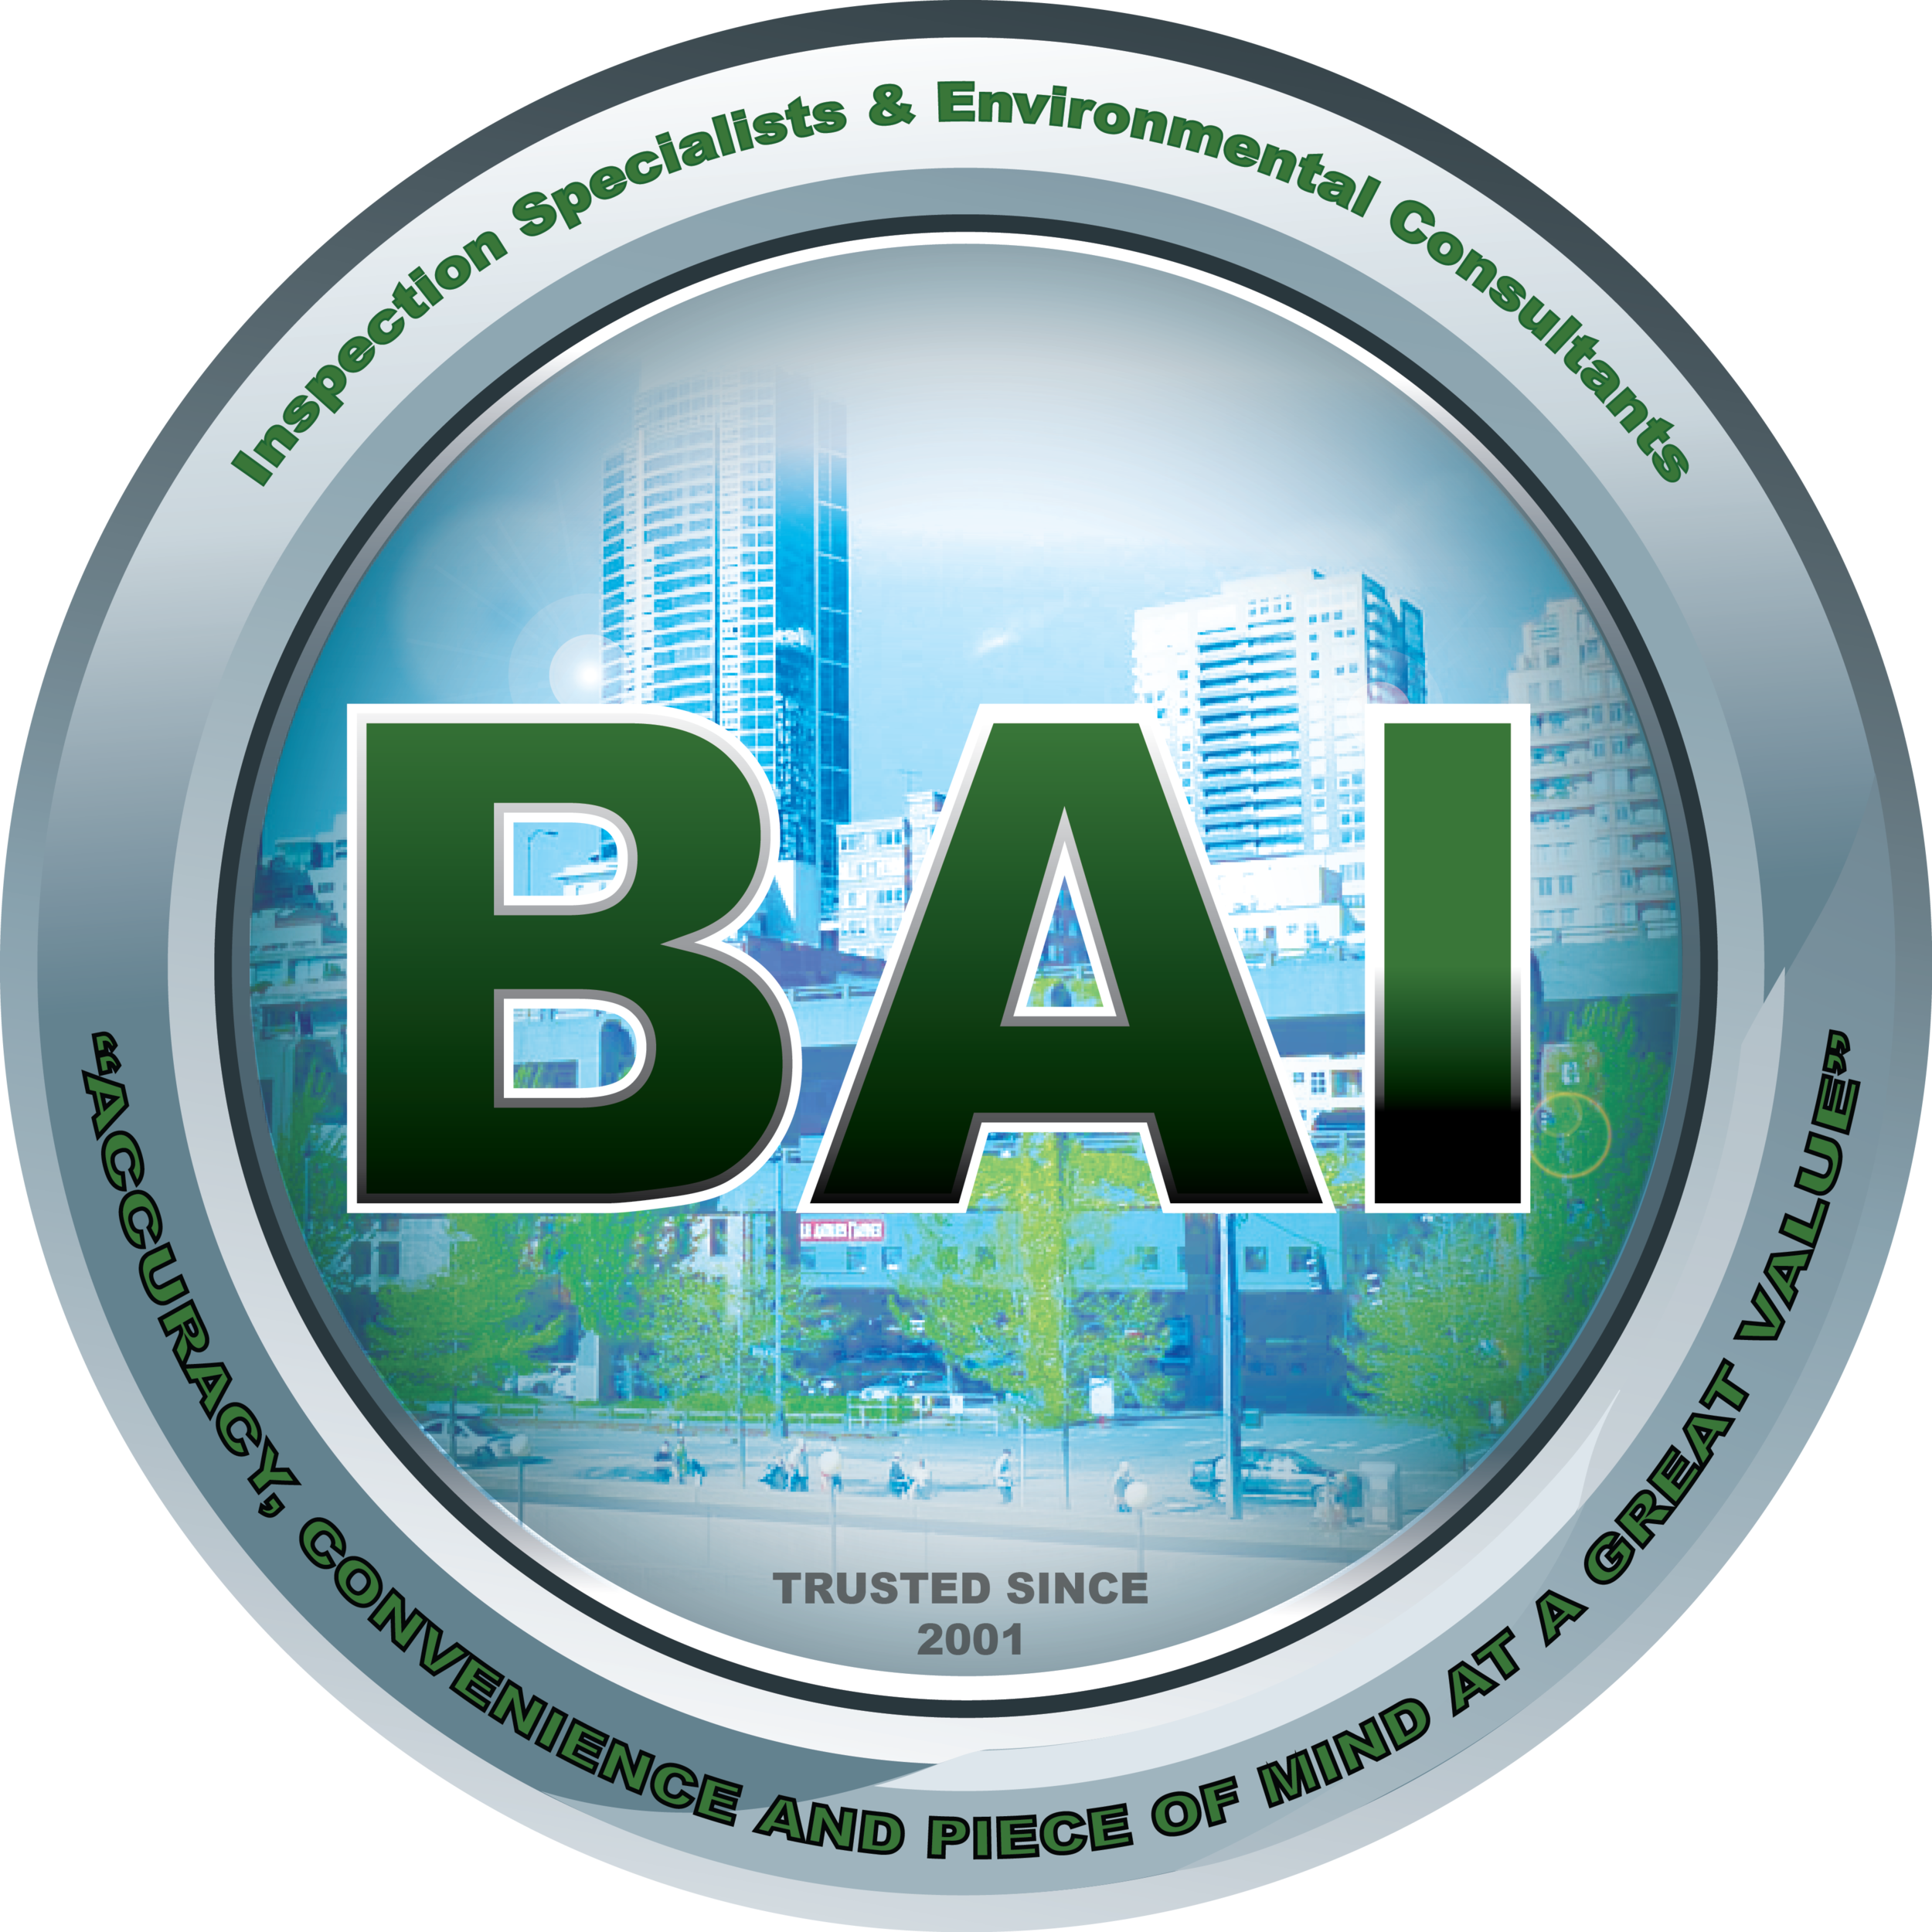 baiinspectionservices